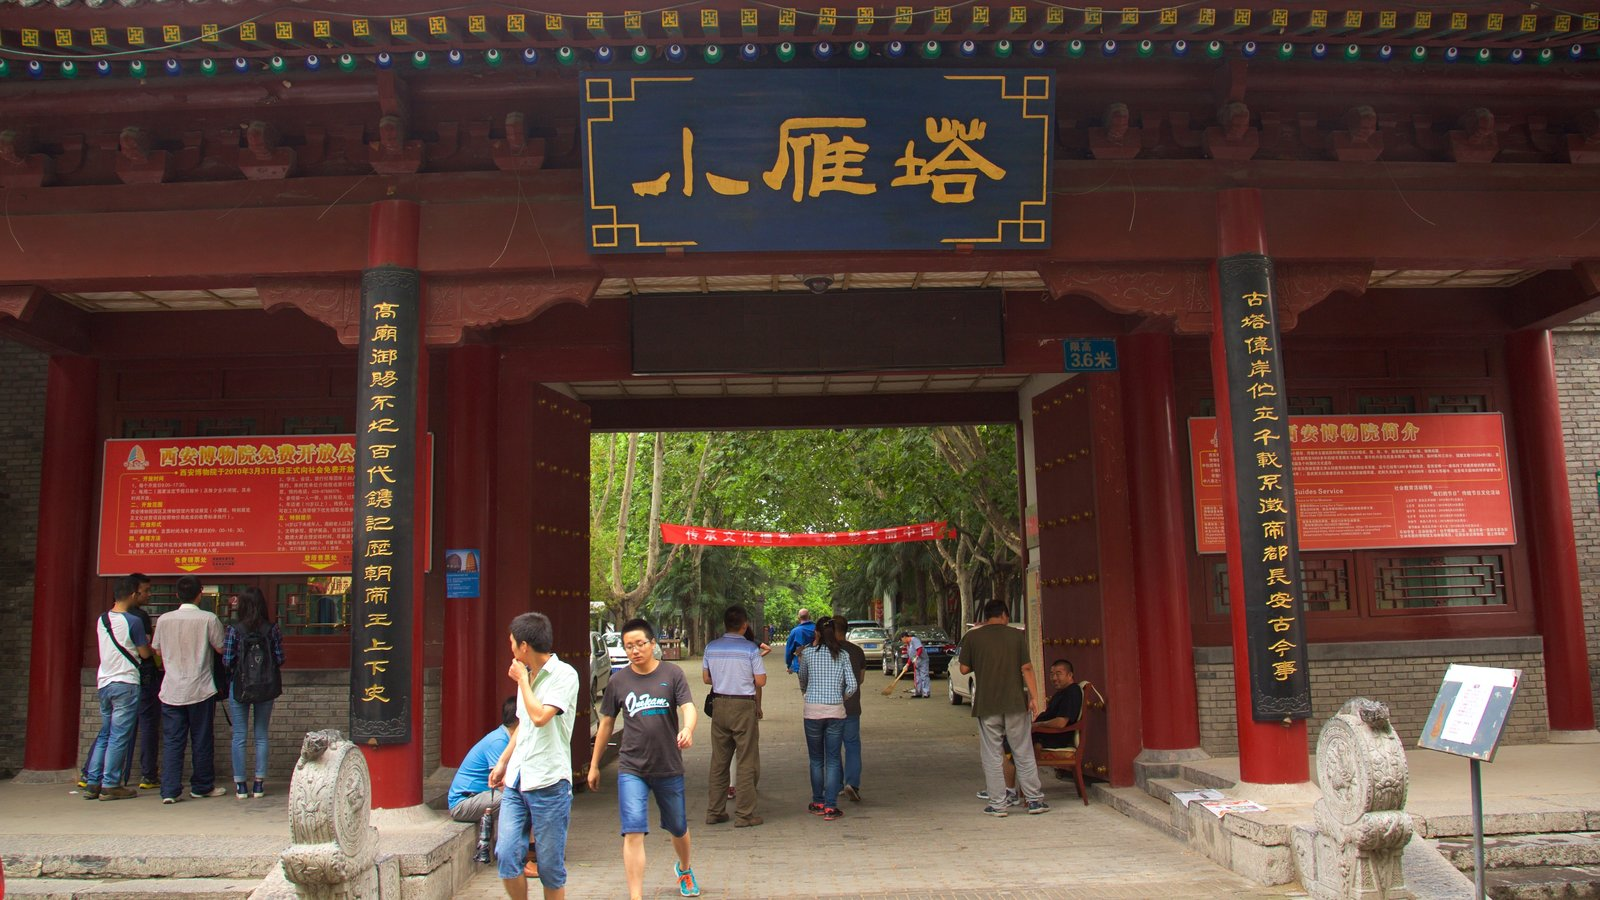 Giant Wild Goose Pagoda which includes a temple or place of worship and signage as well as a small group of people